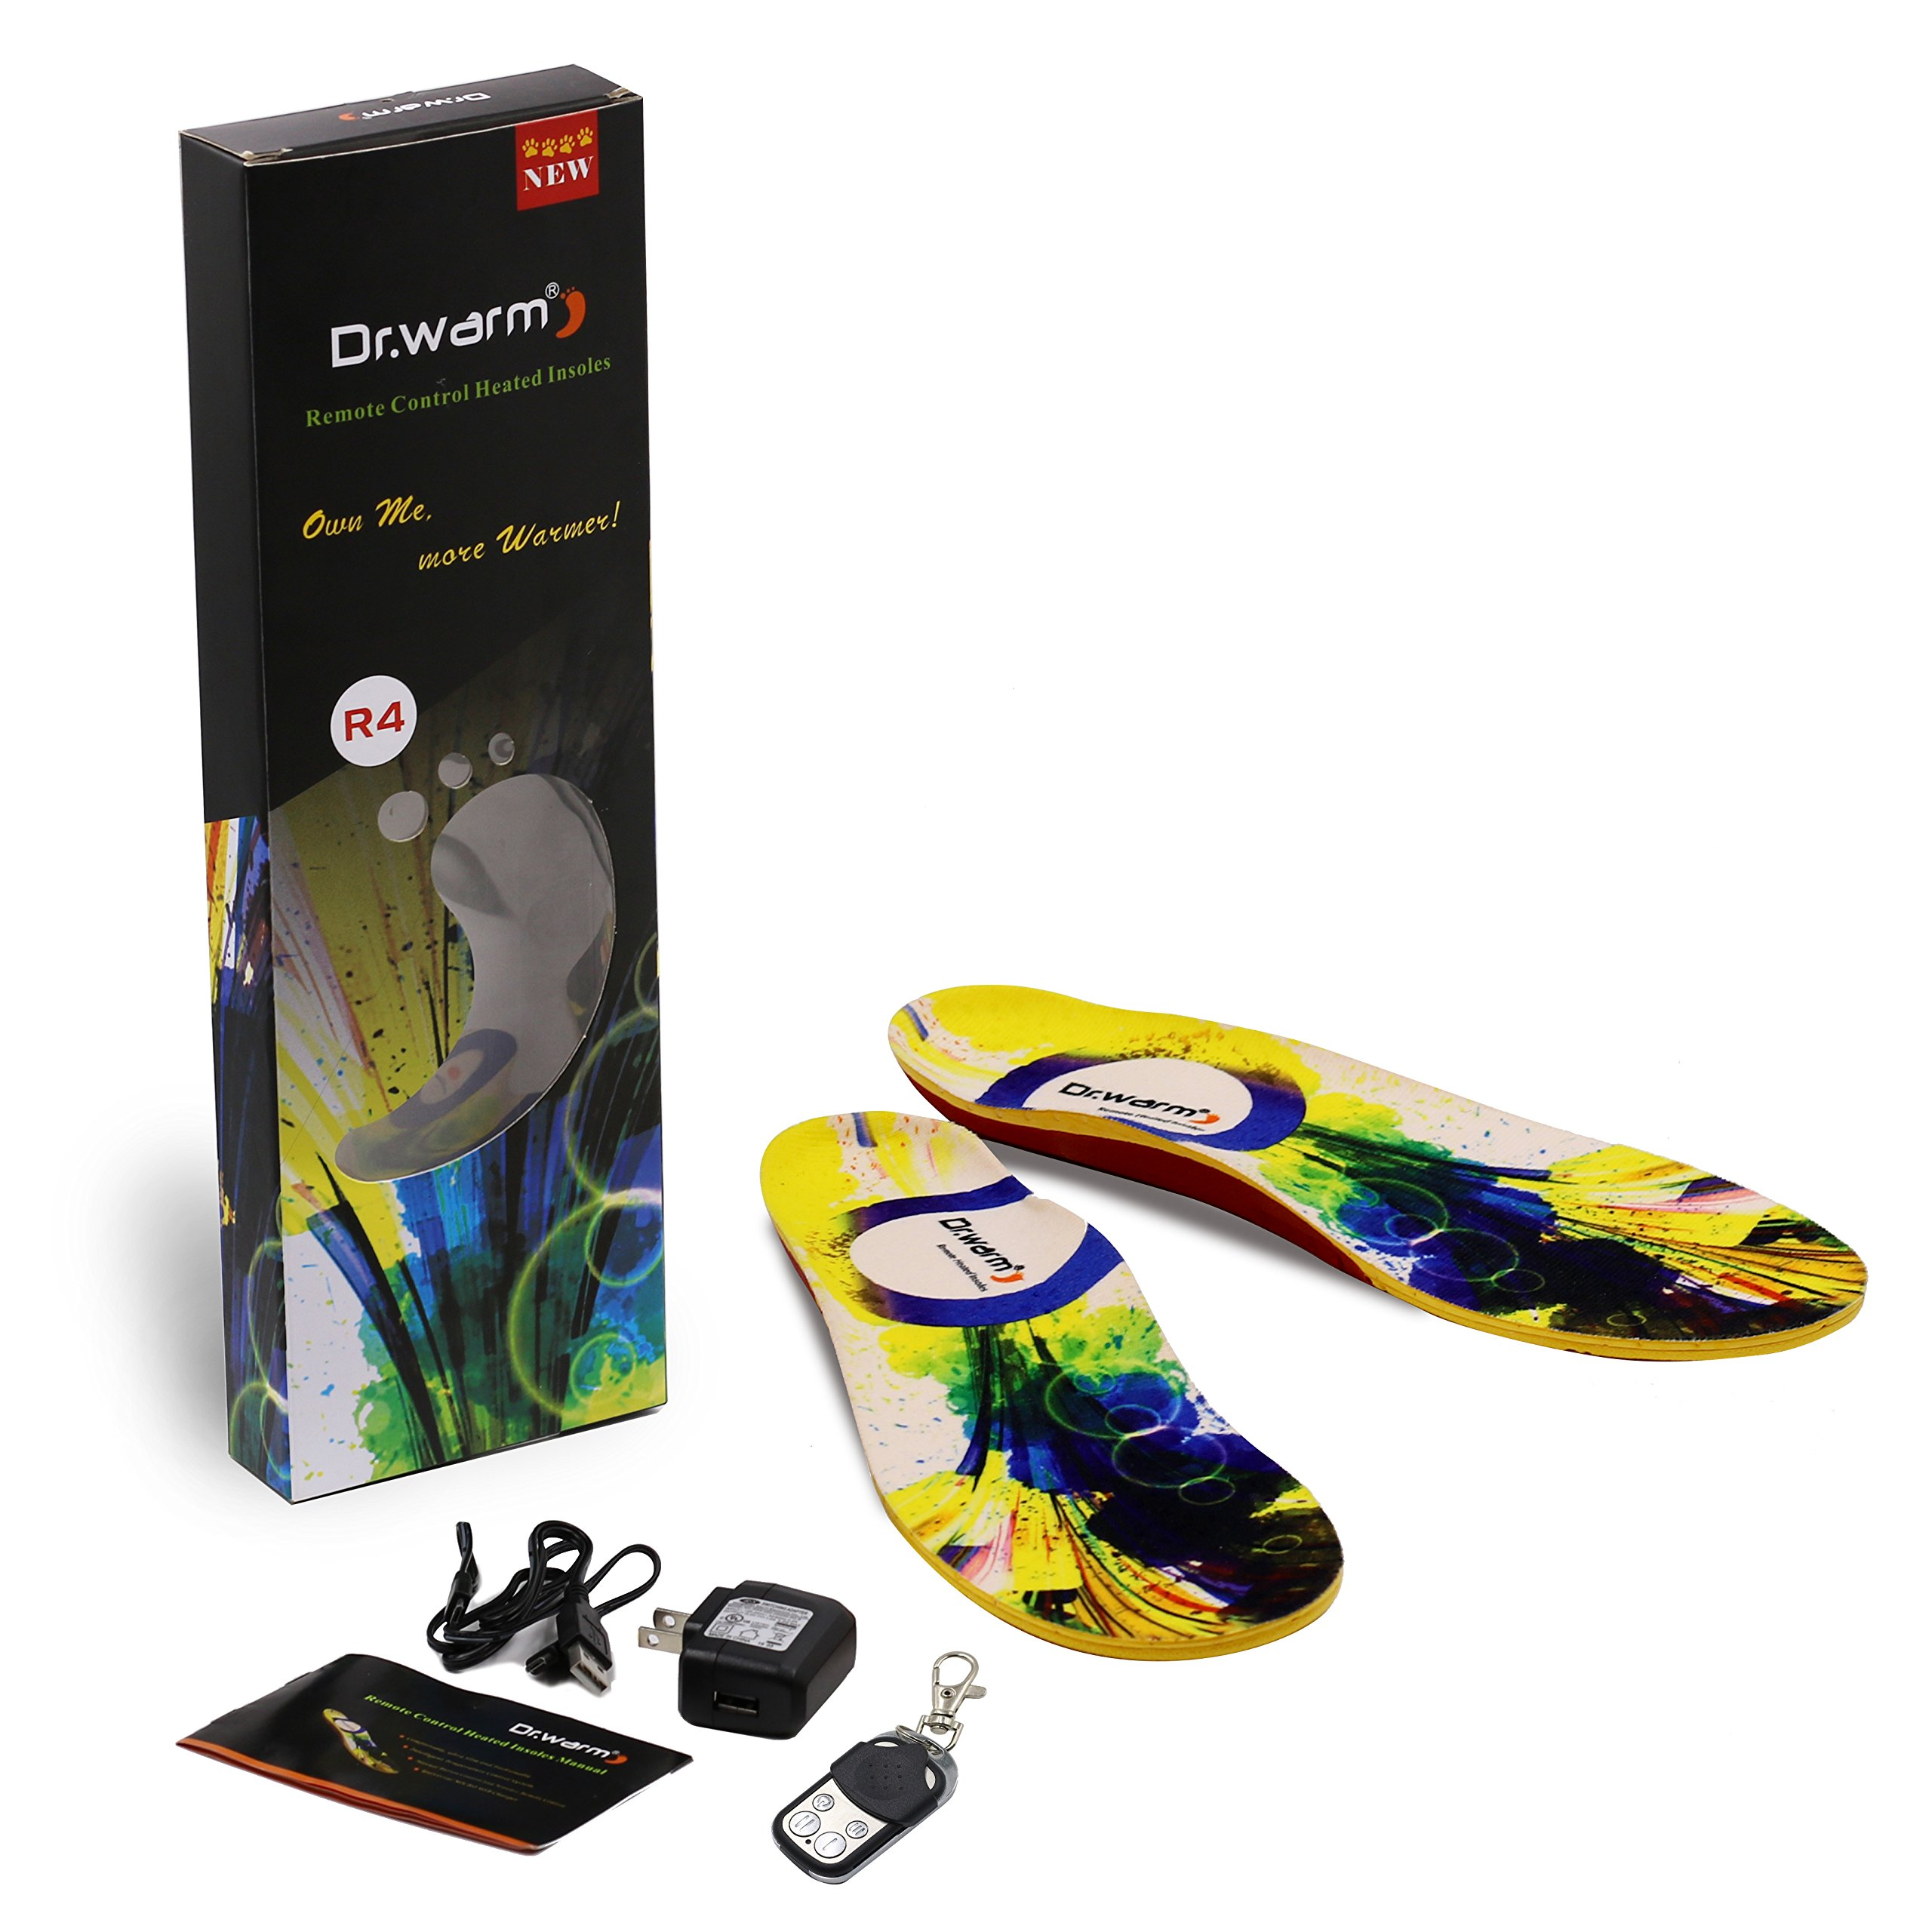 Heated Insoles Rechargeable-Dr.warm Heated Insoles With USB Charging Wireless Remote Control-Foot Warmer for Hunting Fishing Hiking Camping [XL]